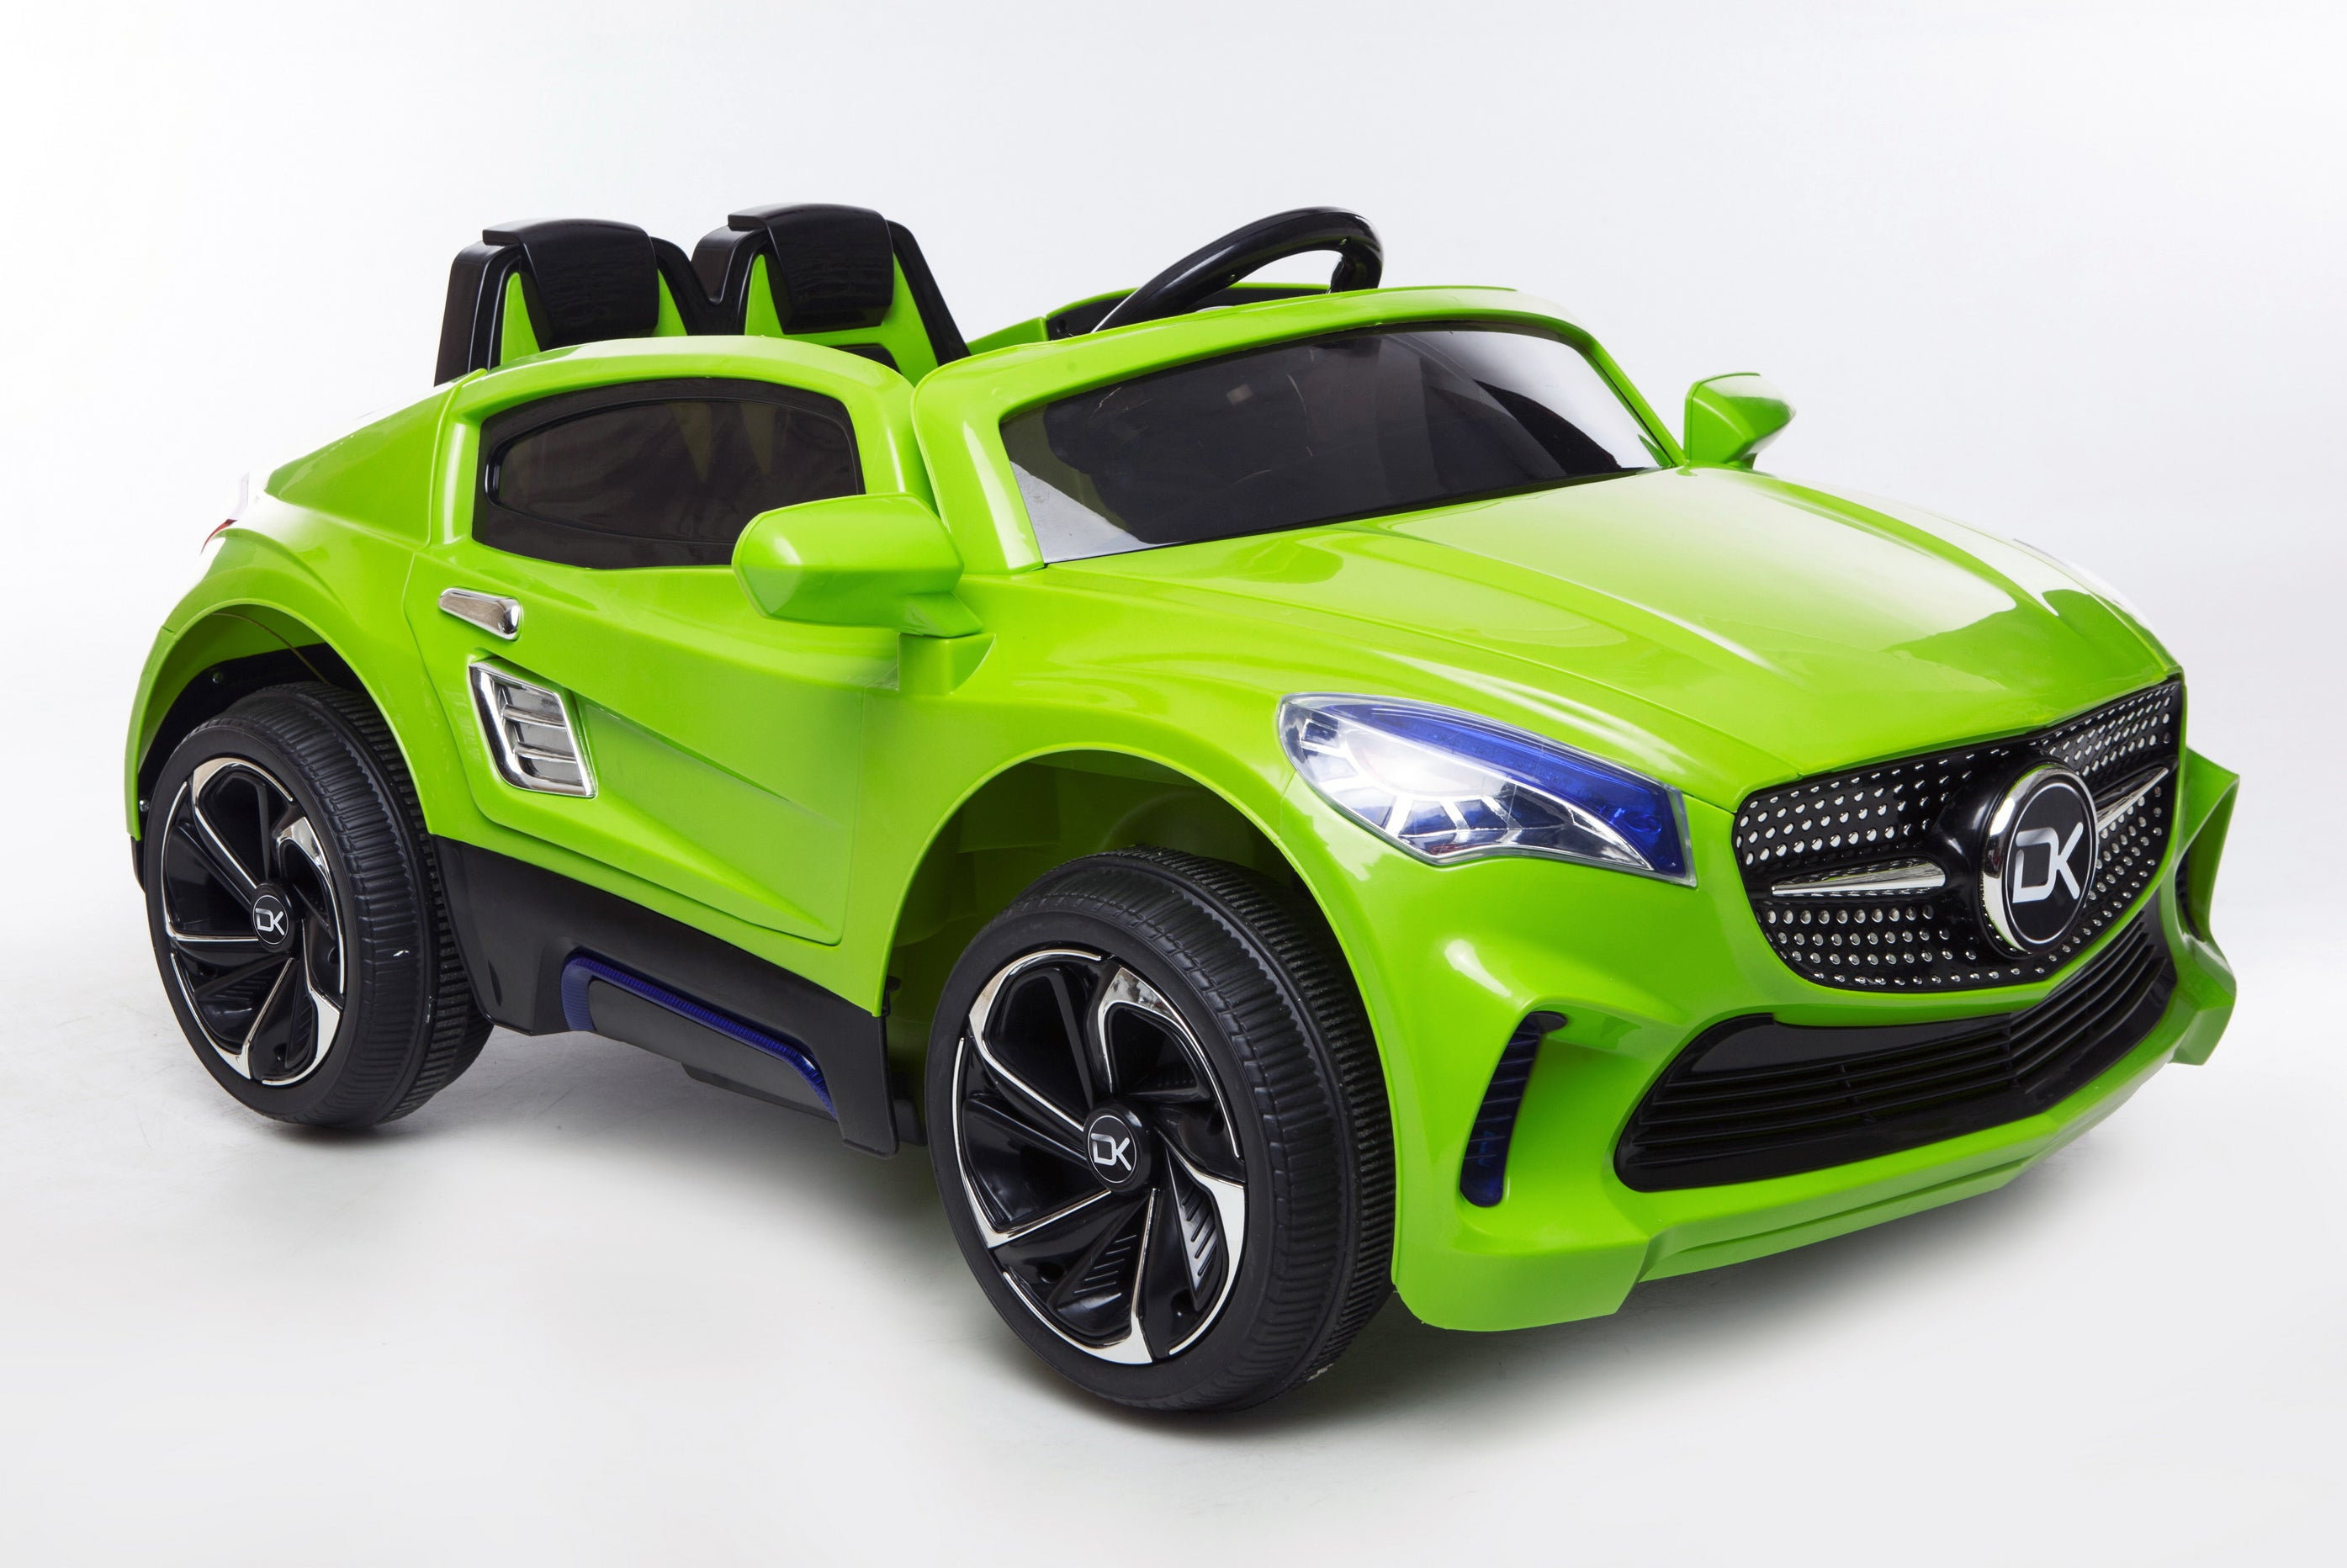 12V Battery Powered Kids Electric Ride On Toy Car (Model: F007) GREEN - RICCO® Toys